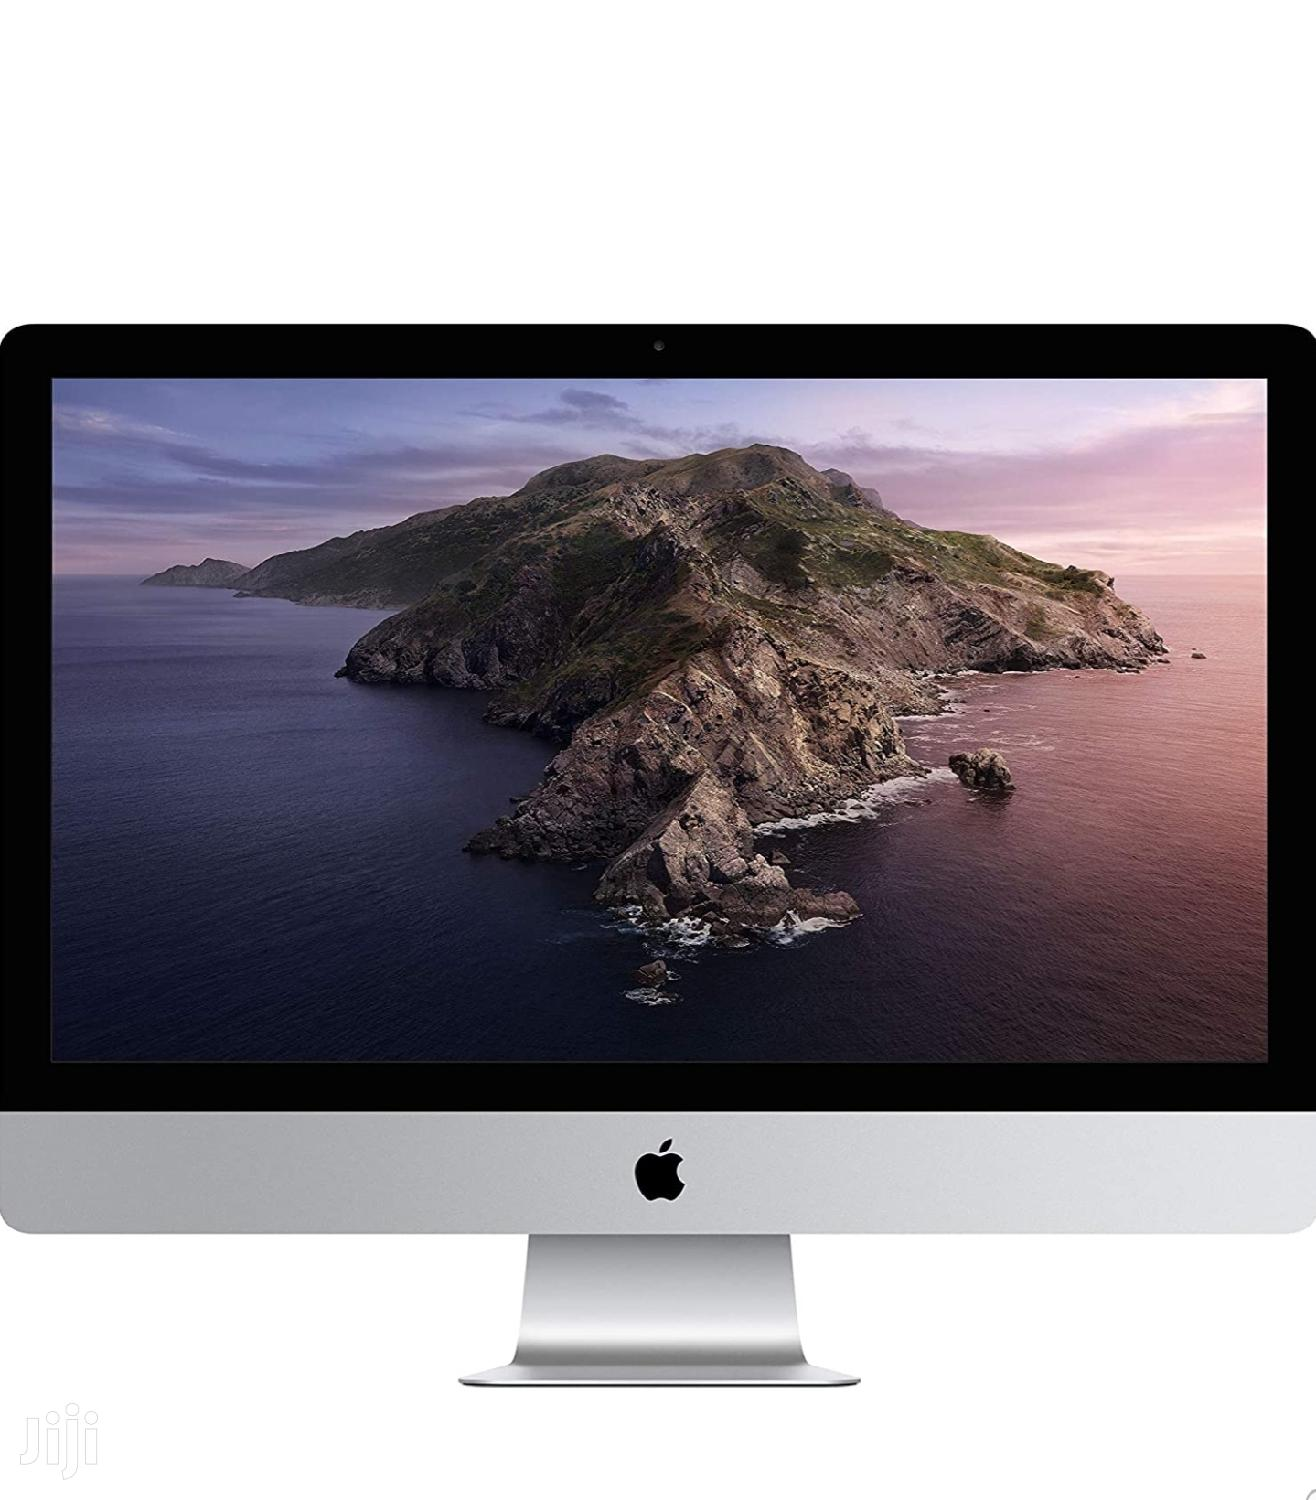 New Desktop Computer Apple iMac 32GB Intel Core I9 SSHD (Hybrid) 2T